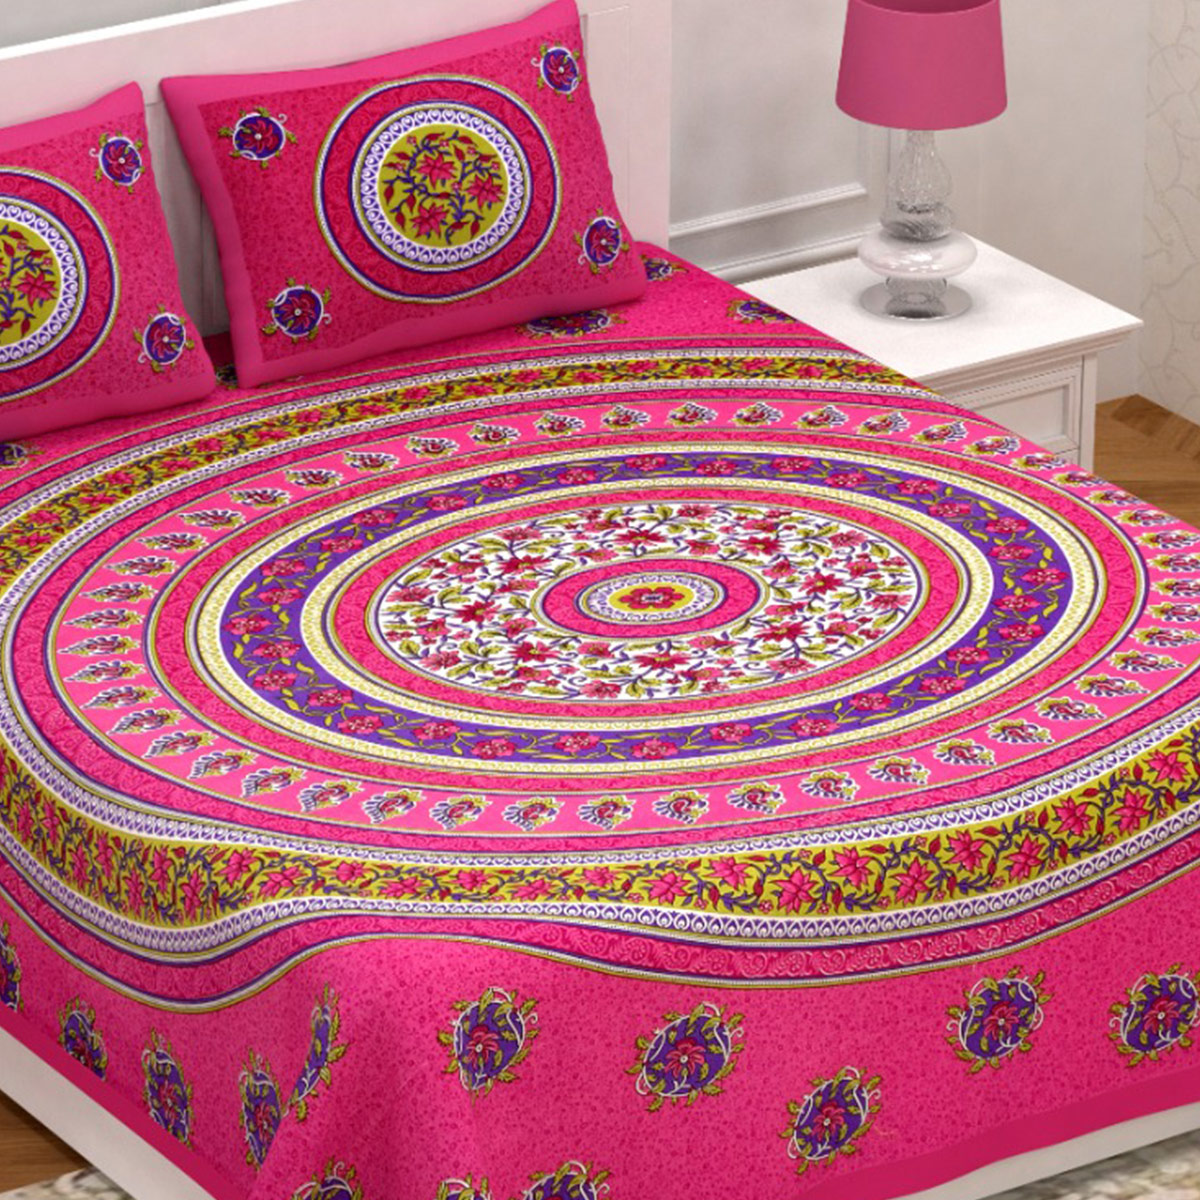 Energetic Pink Colored Jaipuri Print Cotton Double Bedsheet with 2 Pillow Cover